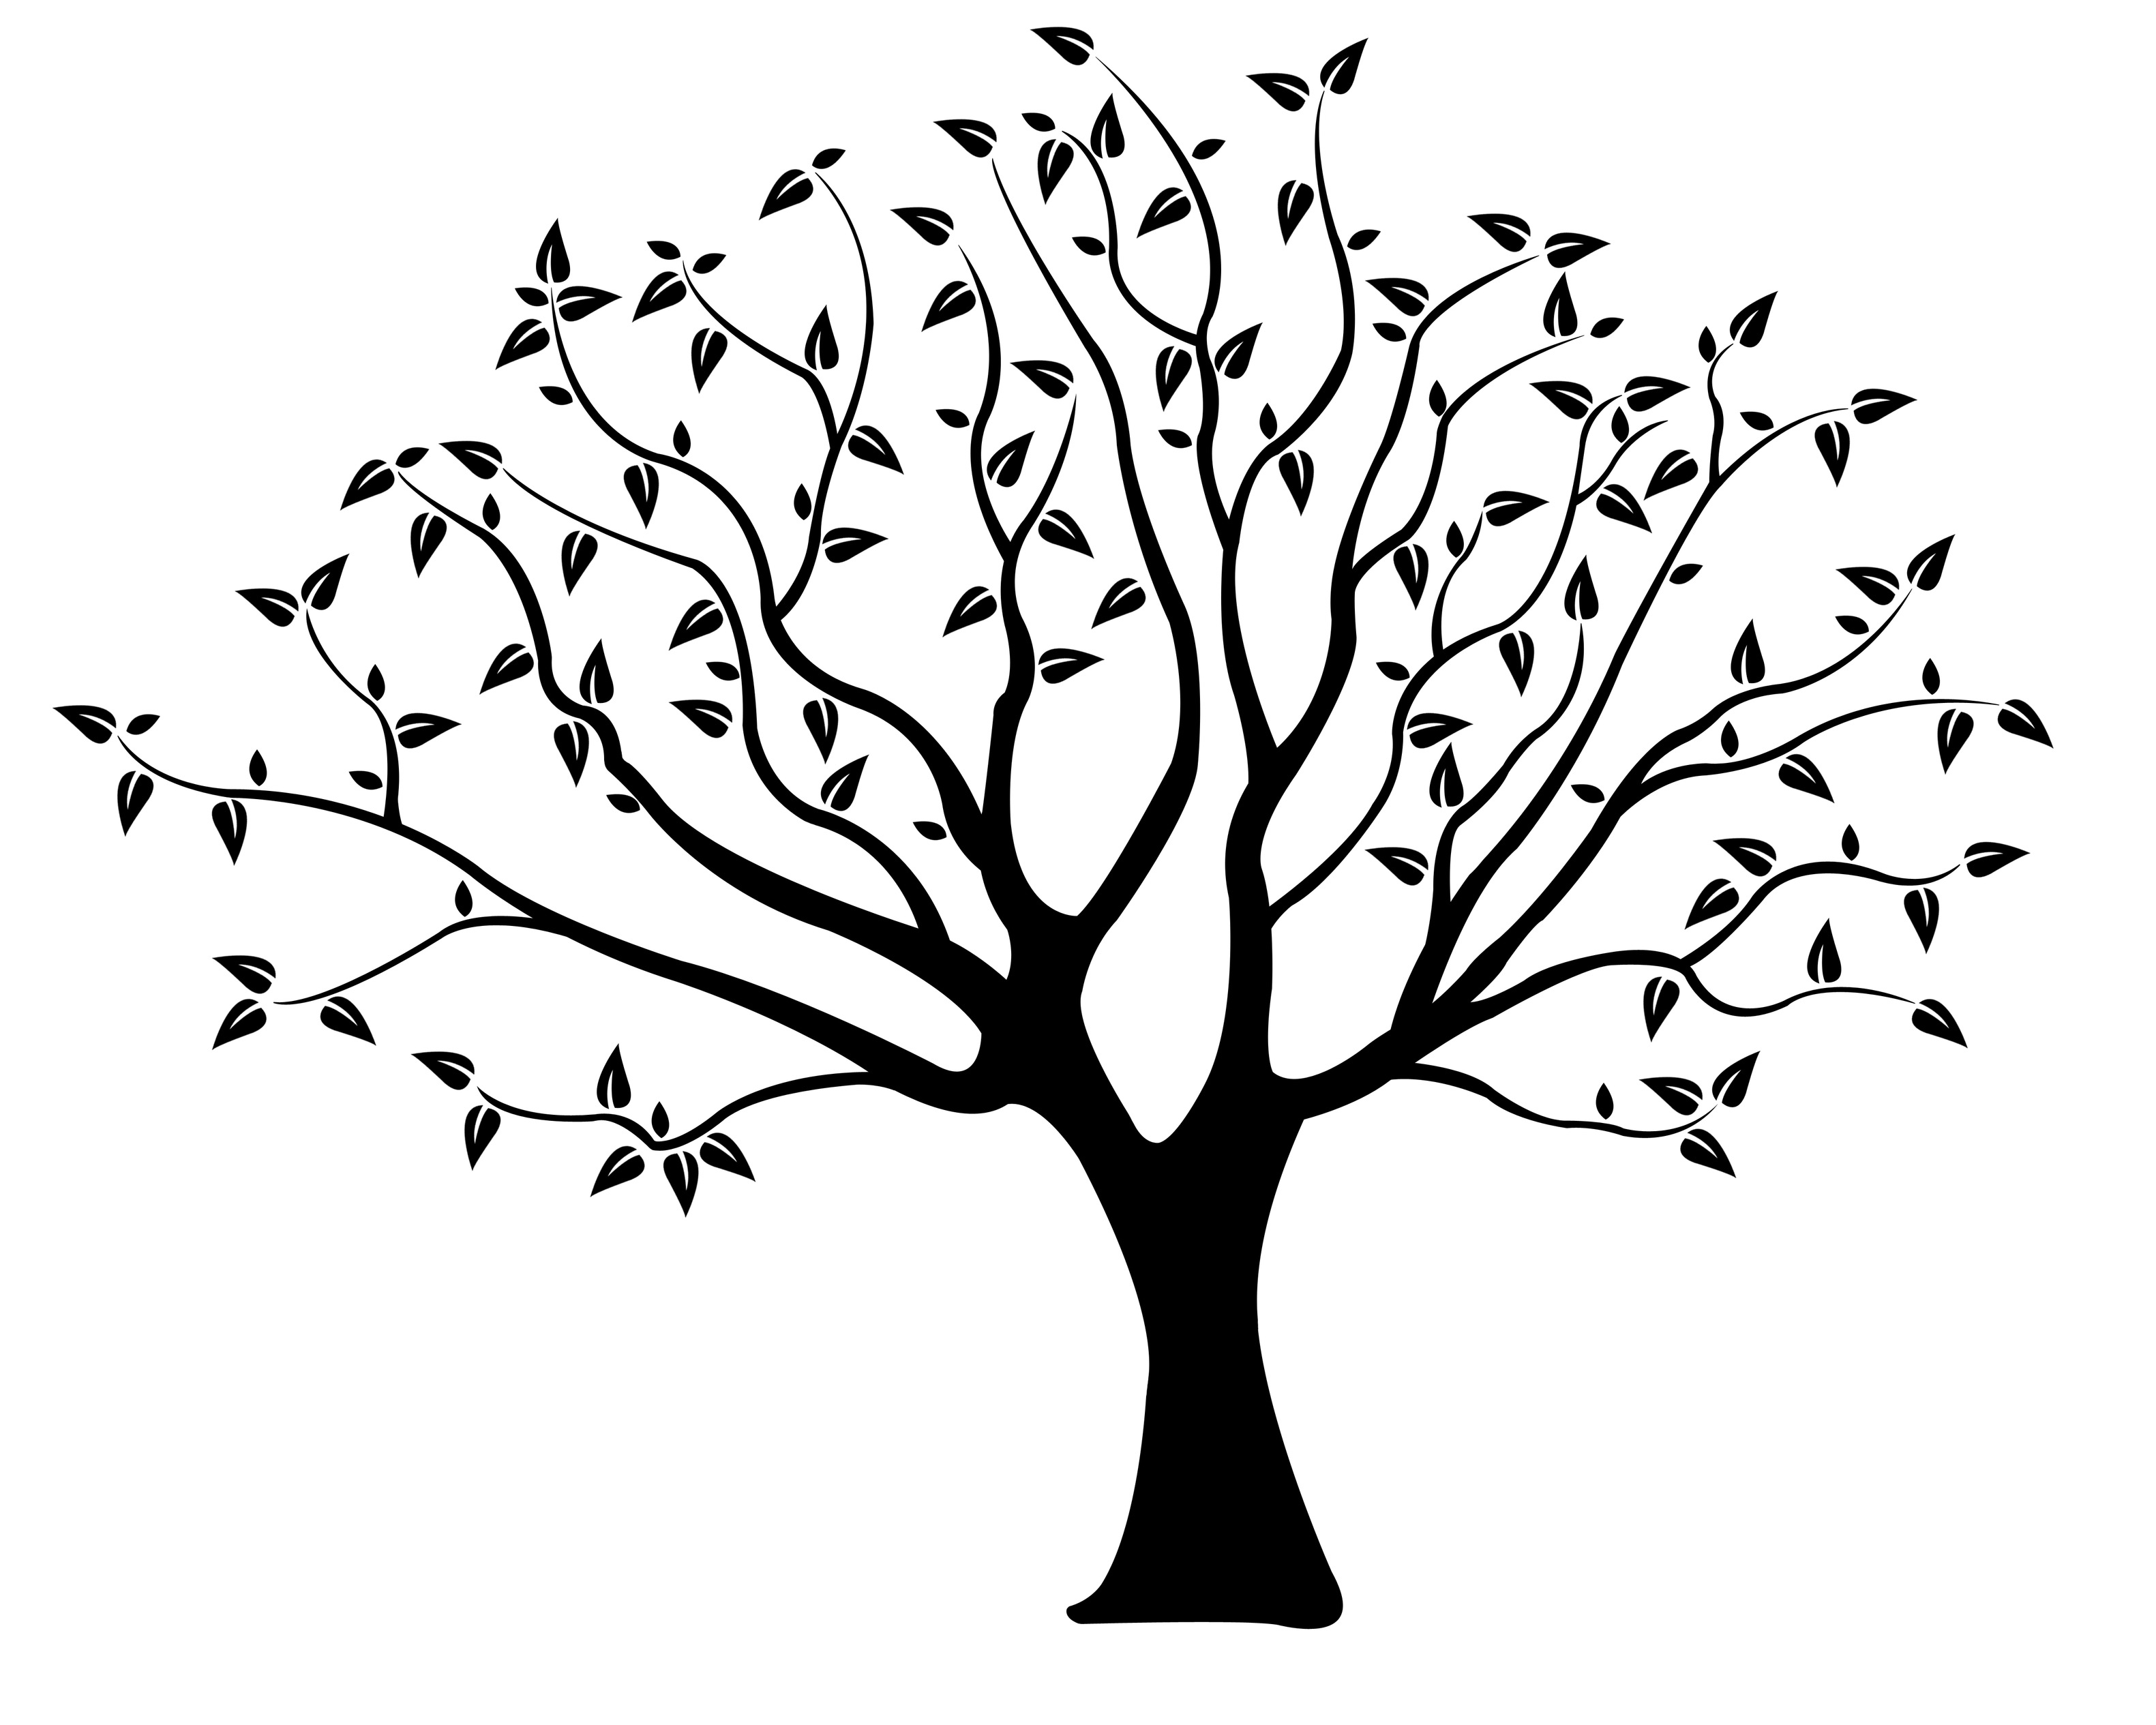 tree of life silhouette celtic tree of life silhouette illustrations creative tree life of silhouette